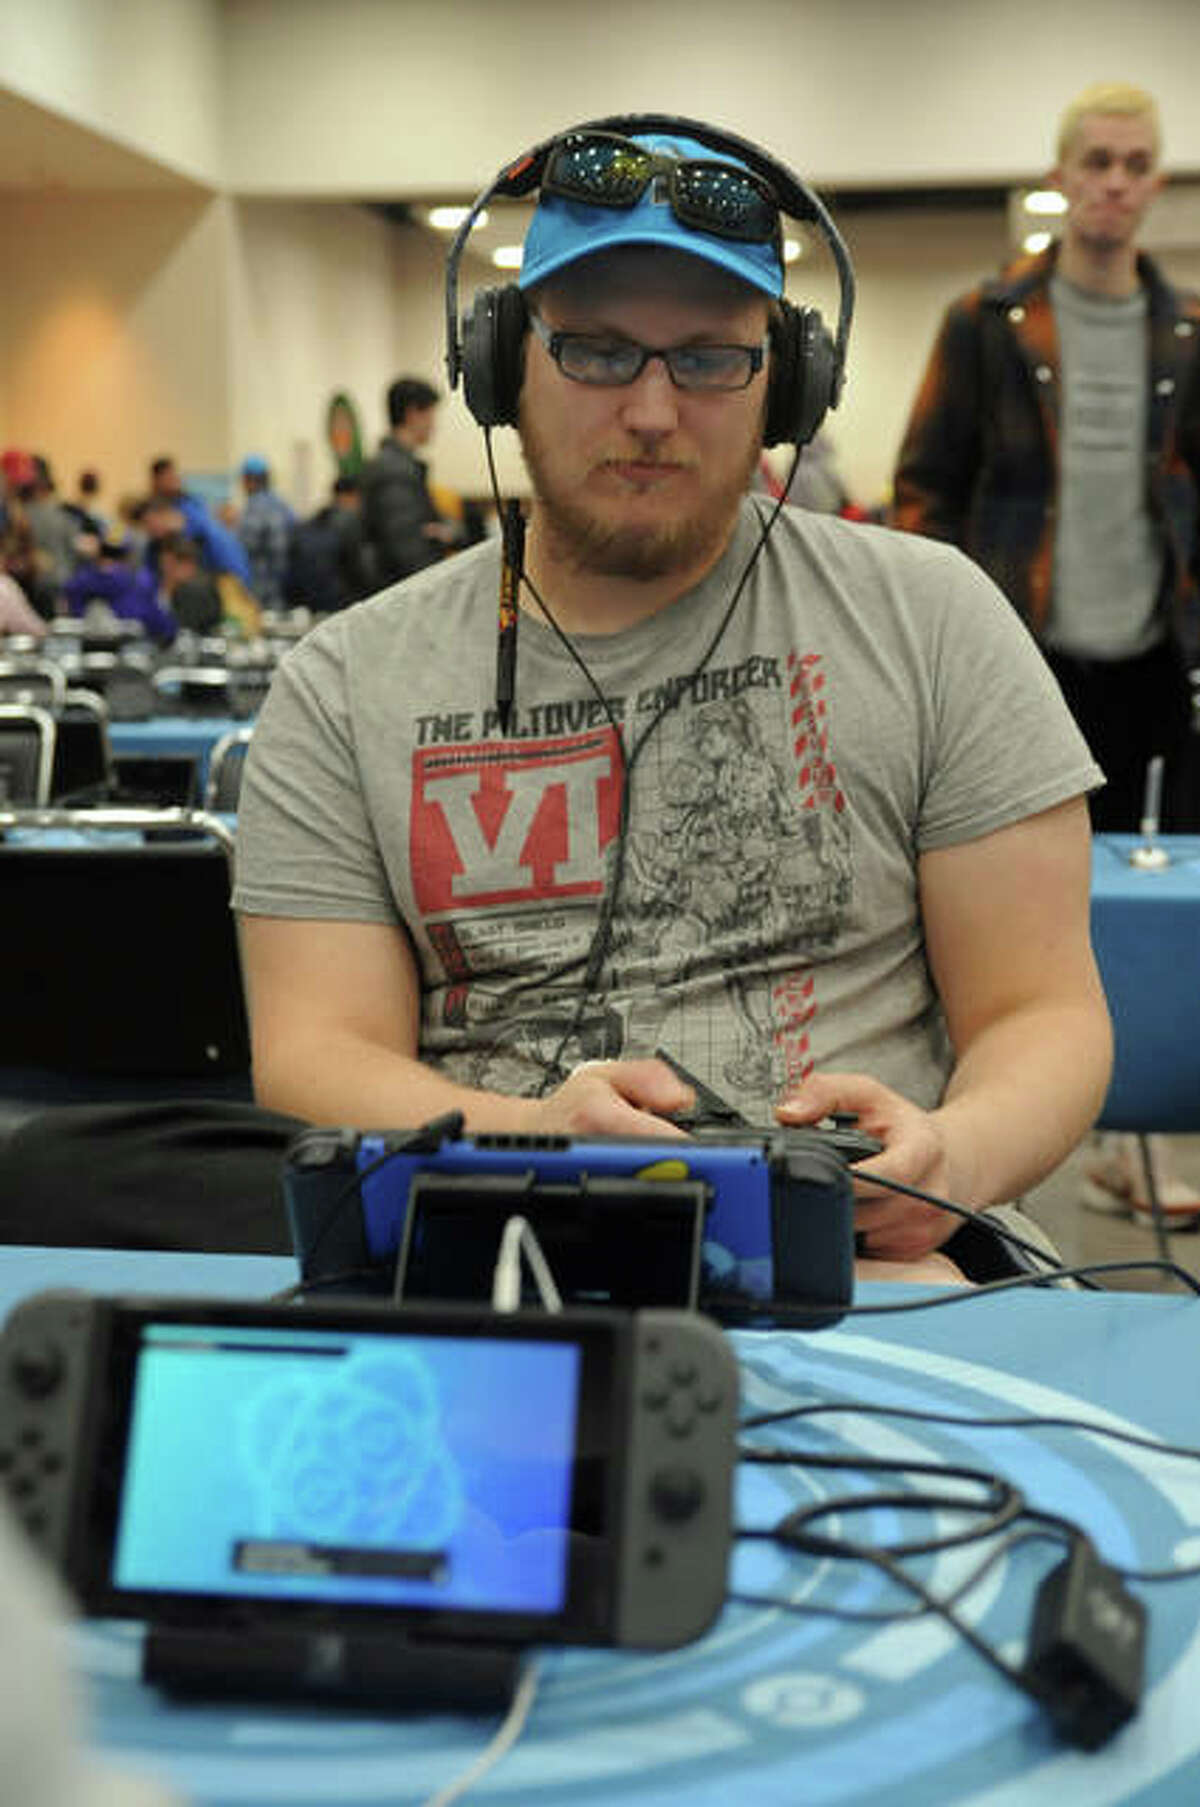 Carl Wilken, of Warrensburg, Missouri, competes during the Pokémon Regional Championship over the weekend in Collinsville. More than 1,200 people gathered in one large room to play video games Saturday at Gateway Center.